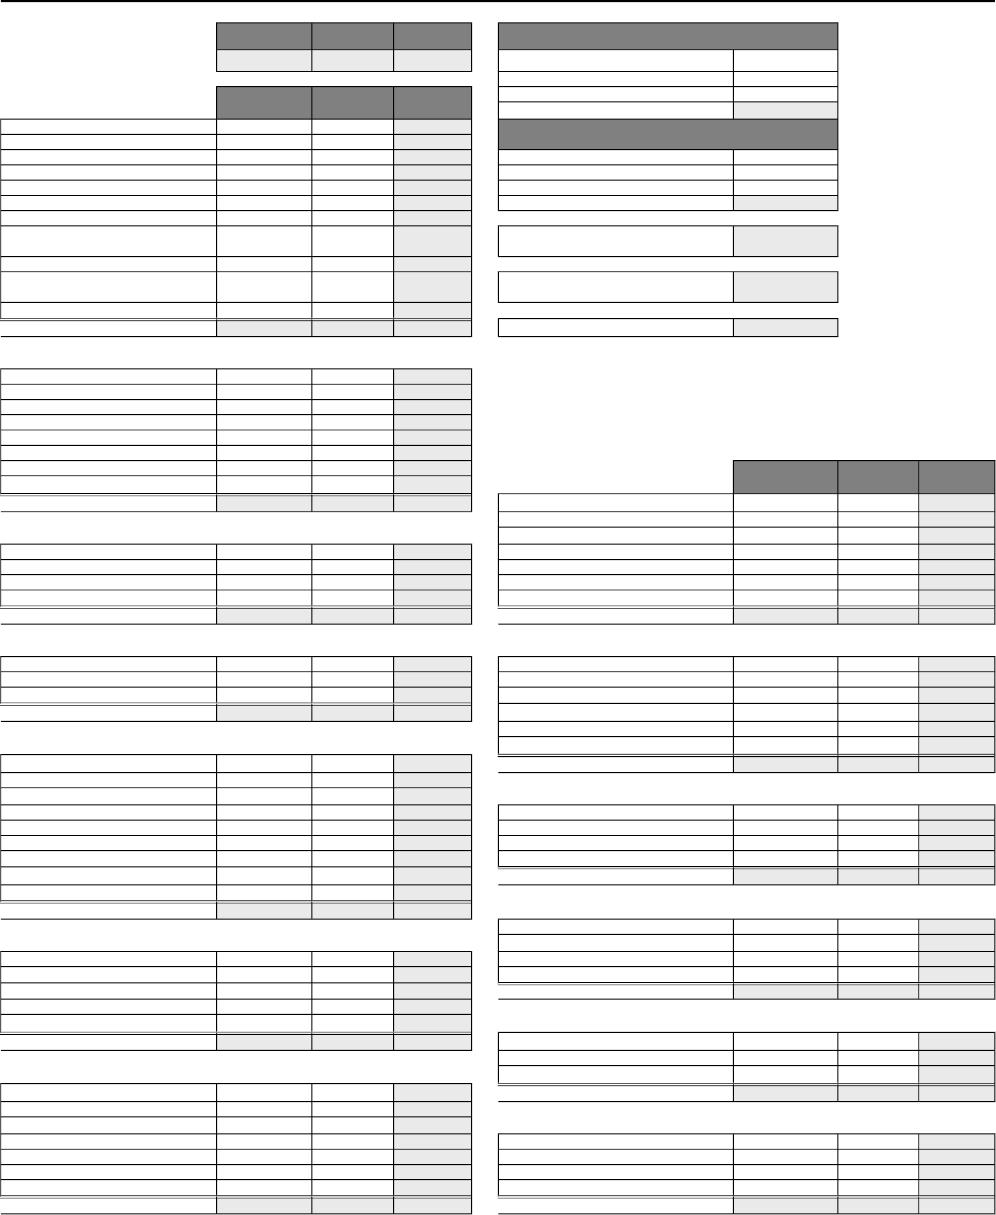 Family Monthly Budget Template 1